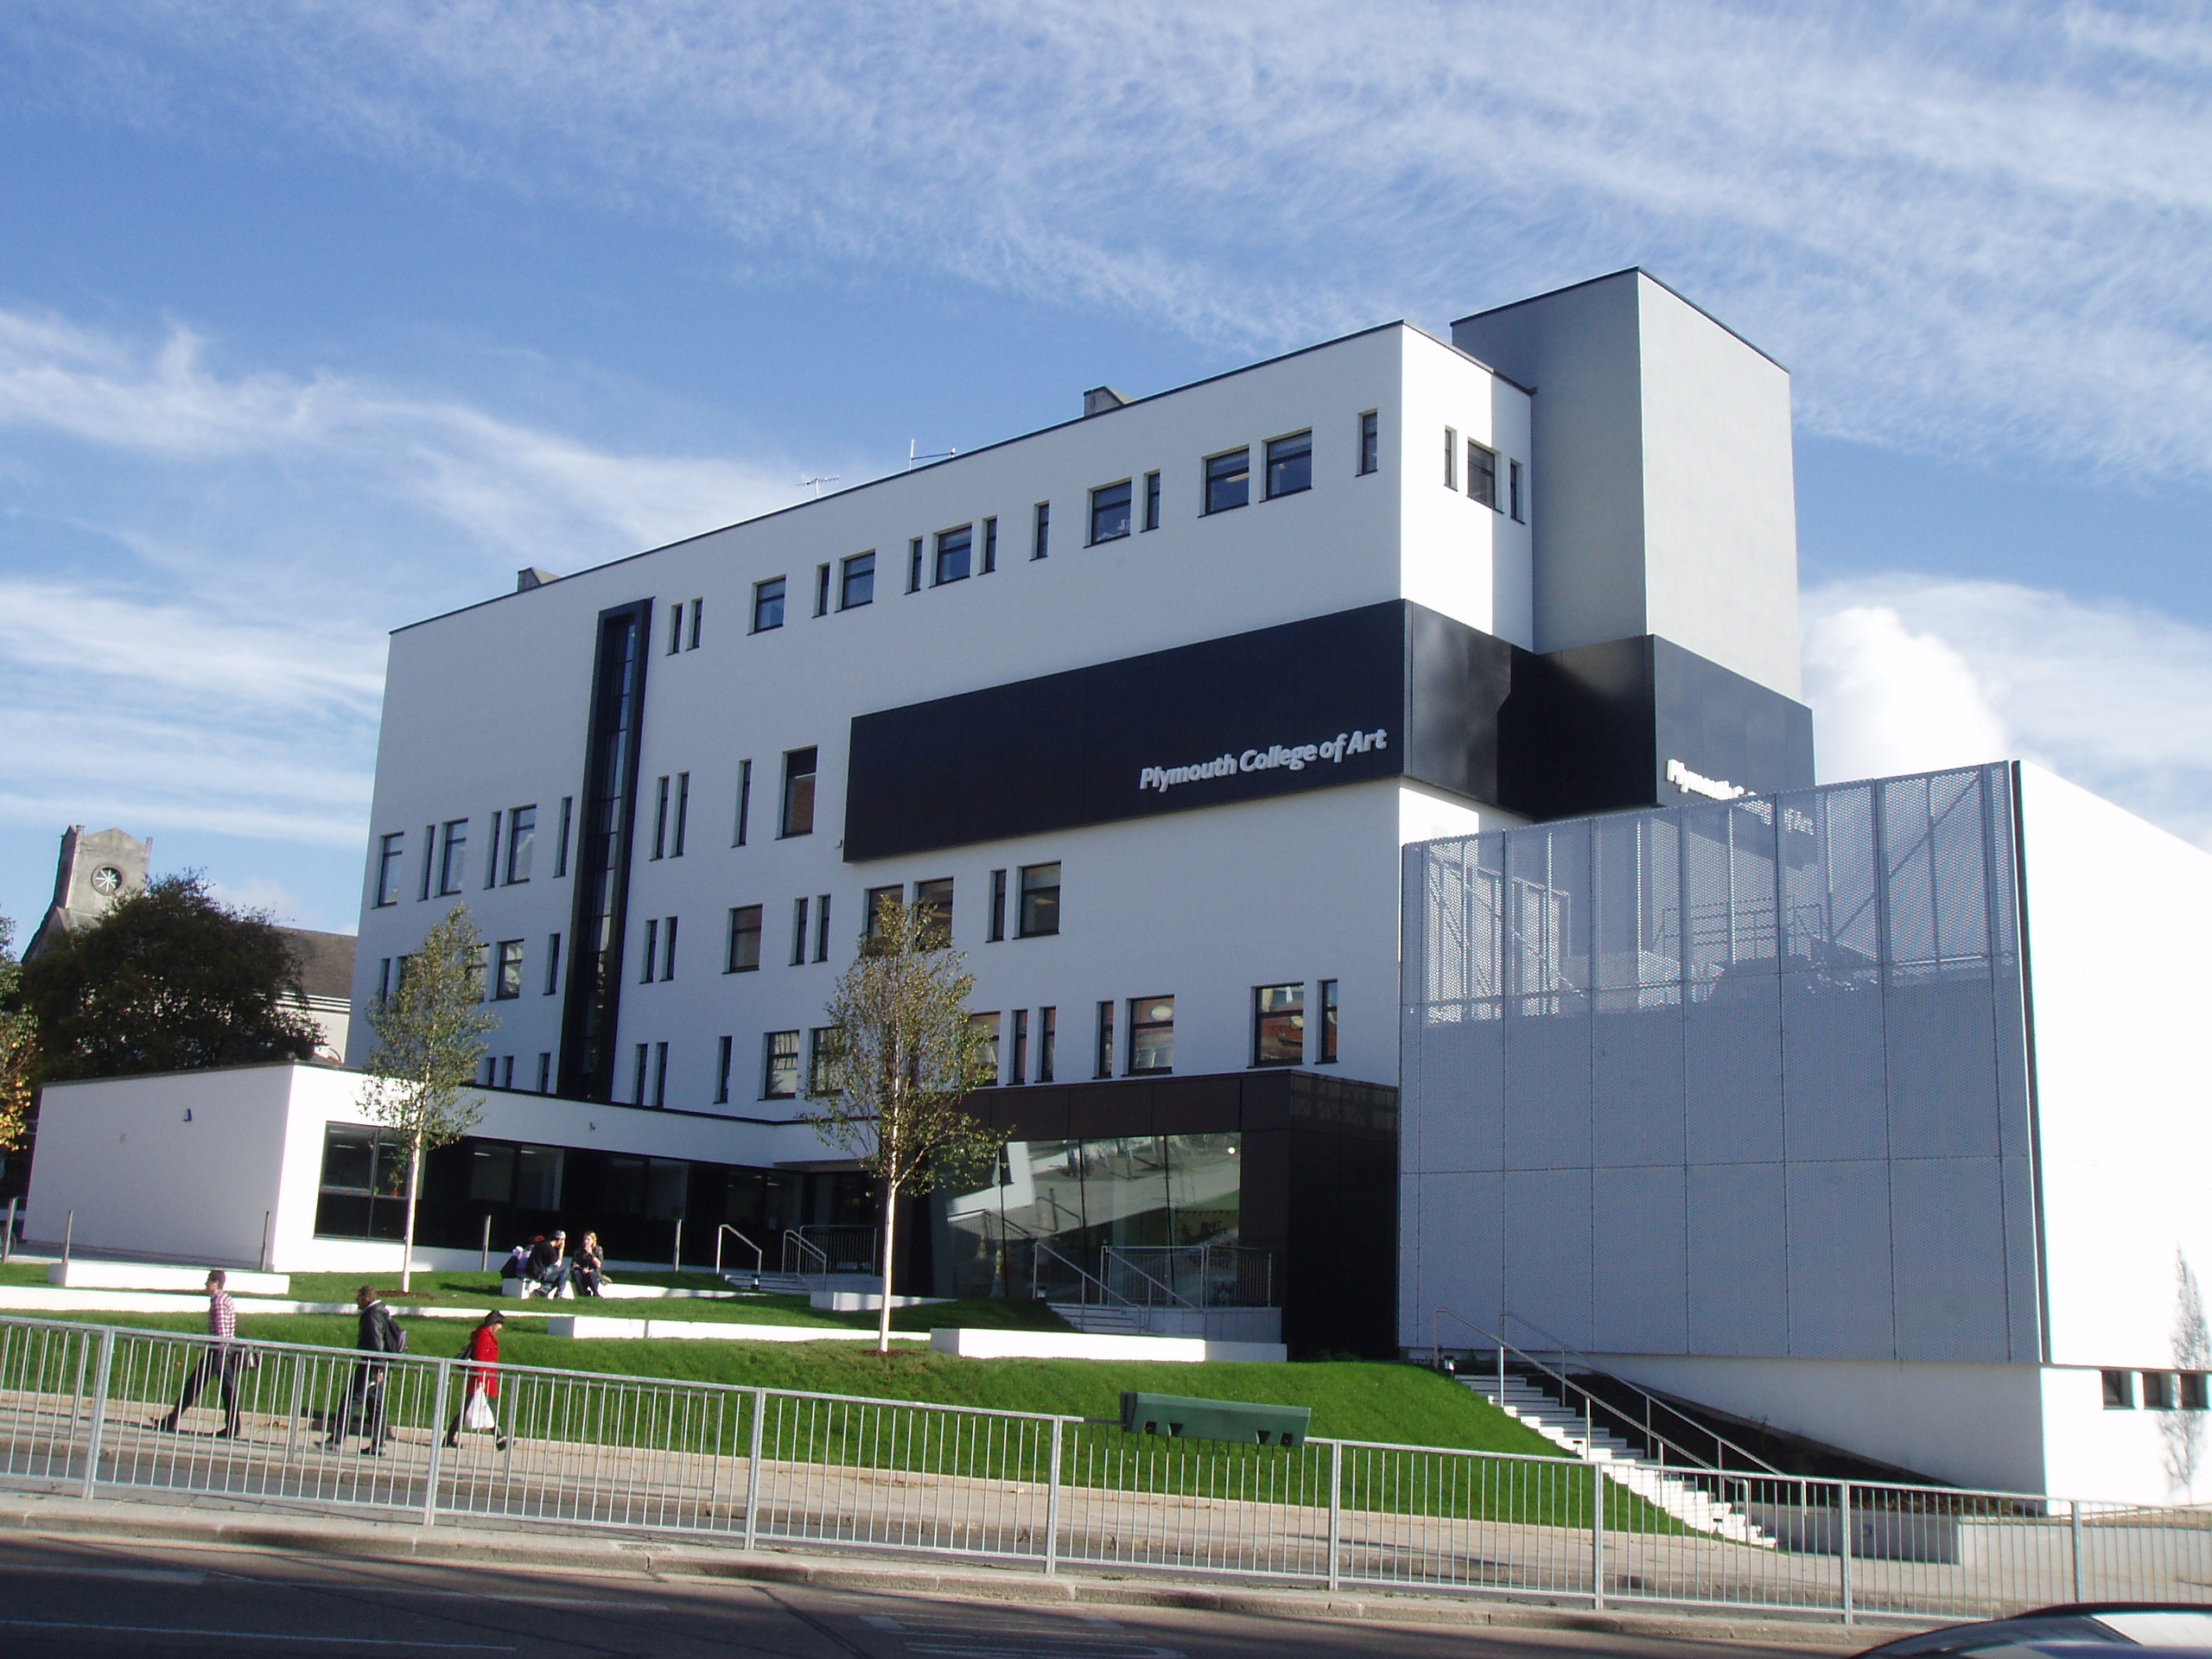 Plymouth college of art photography